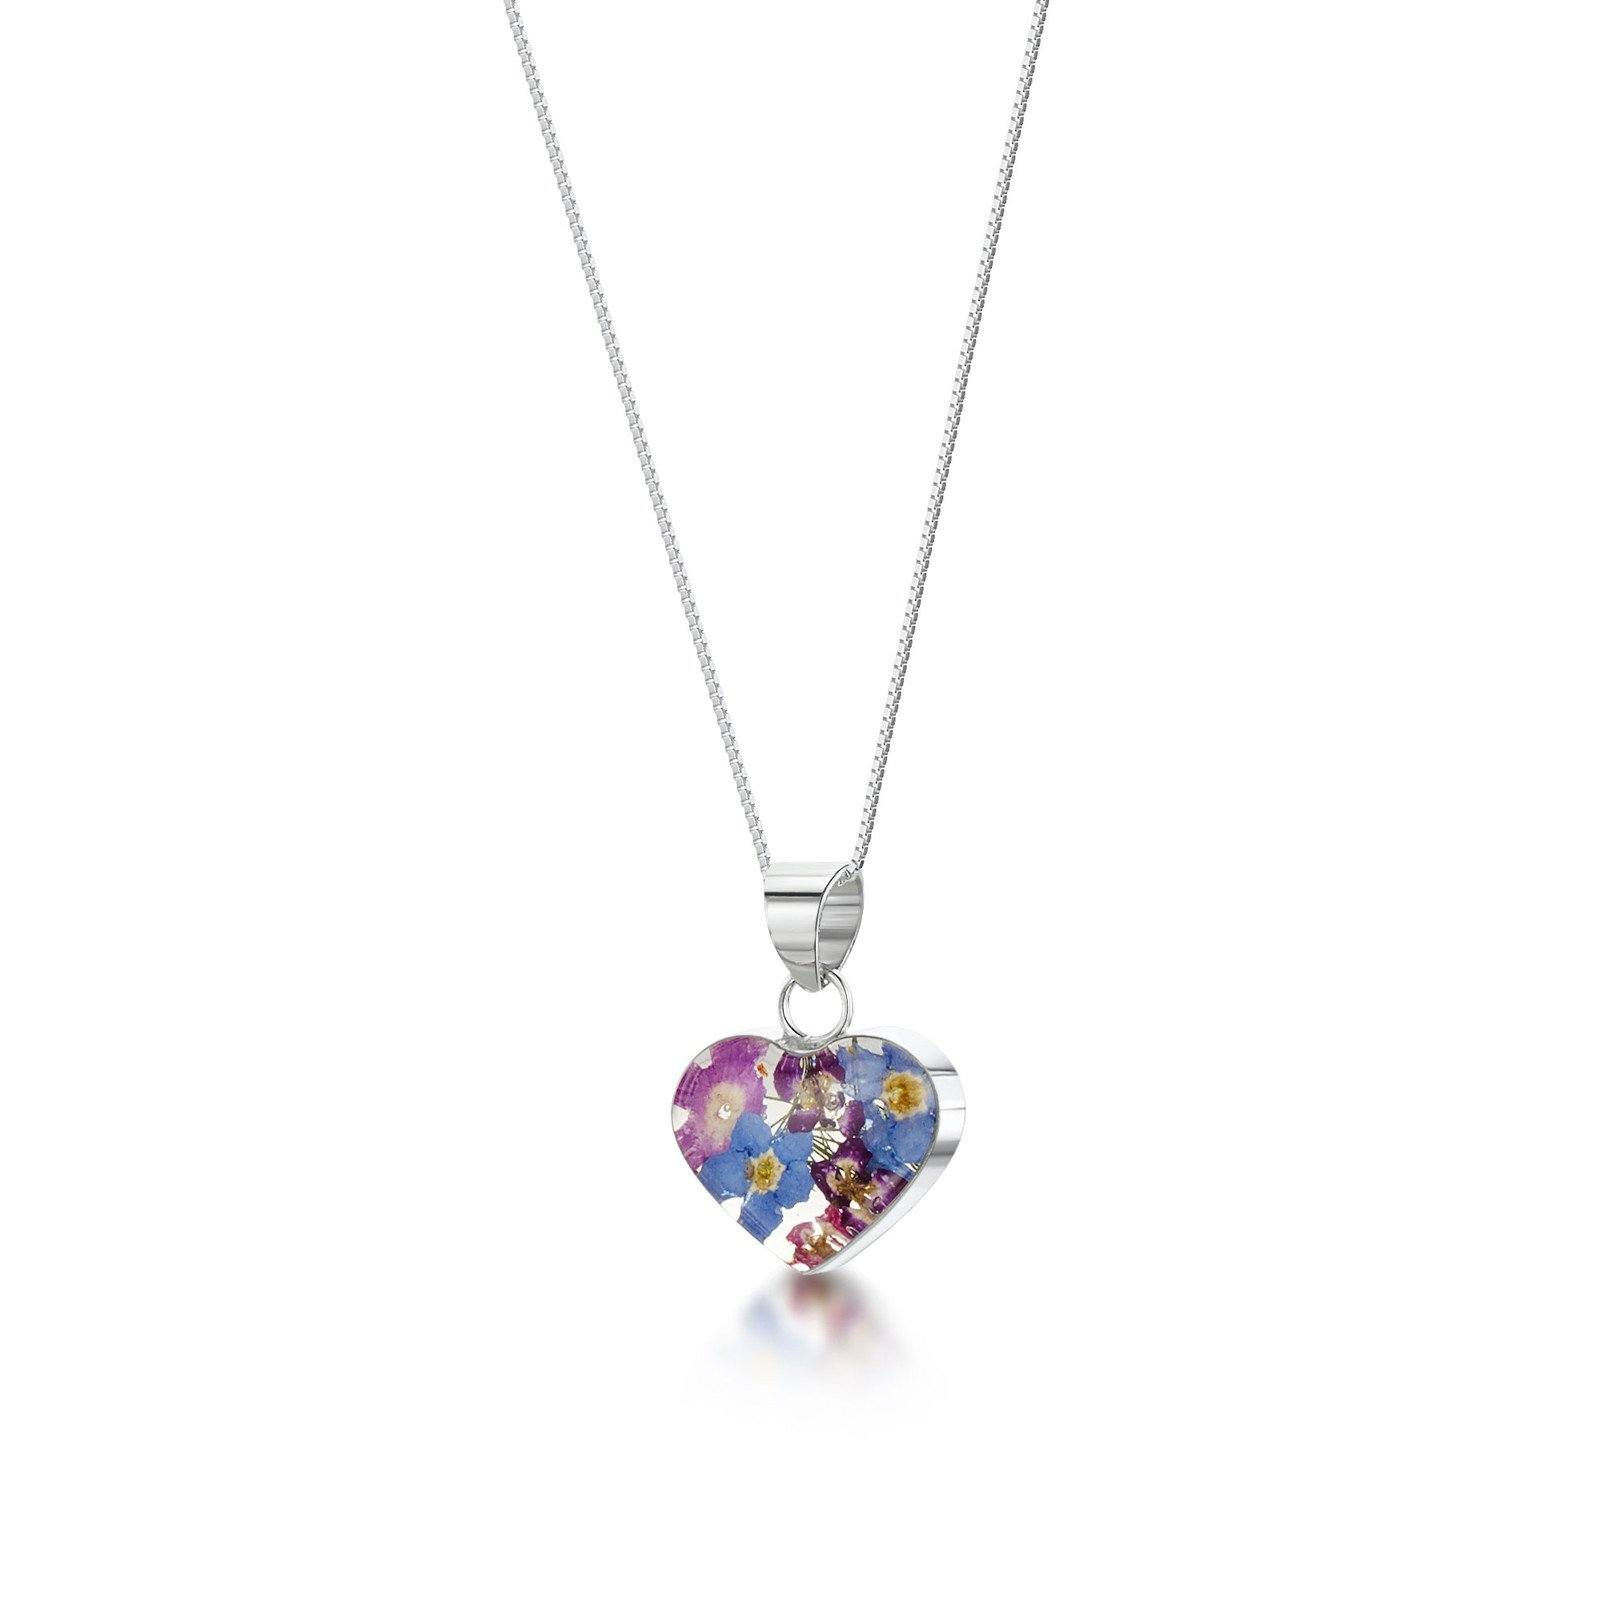 Real Flower jewellery Heart shaped silver pendant